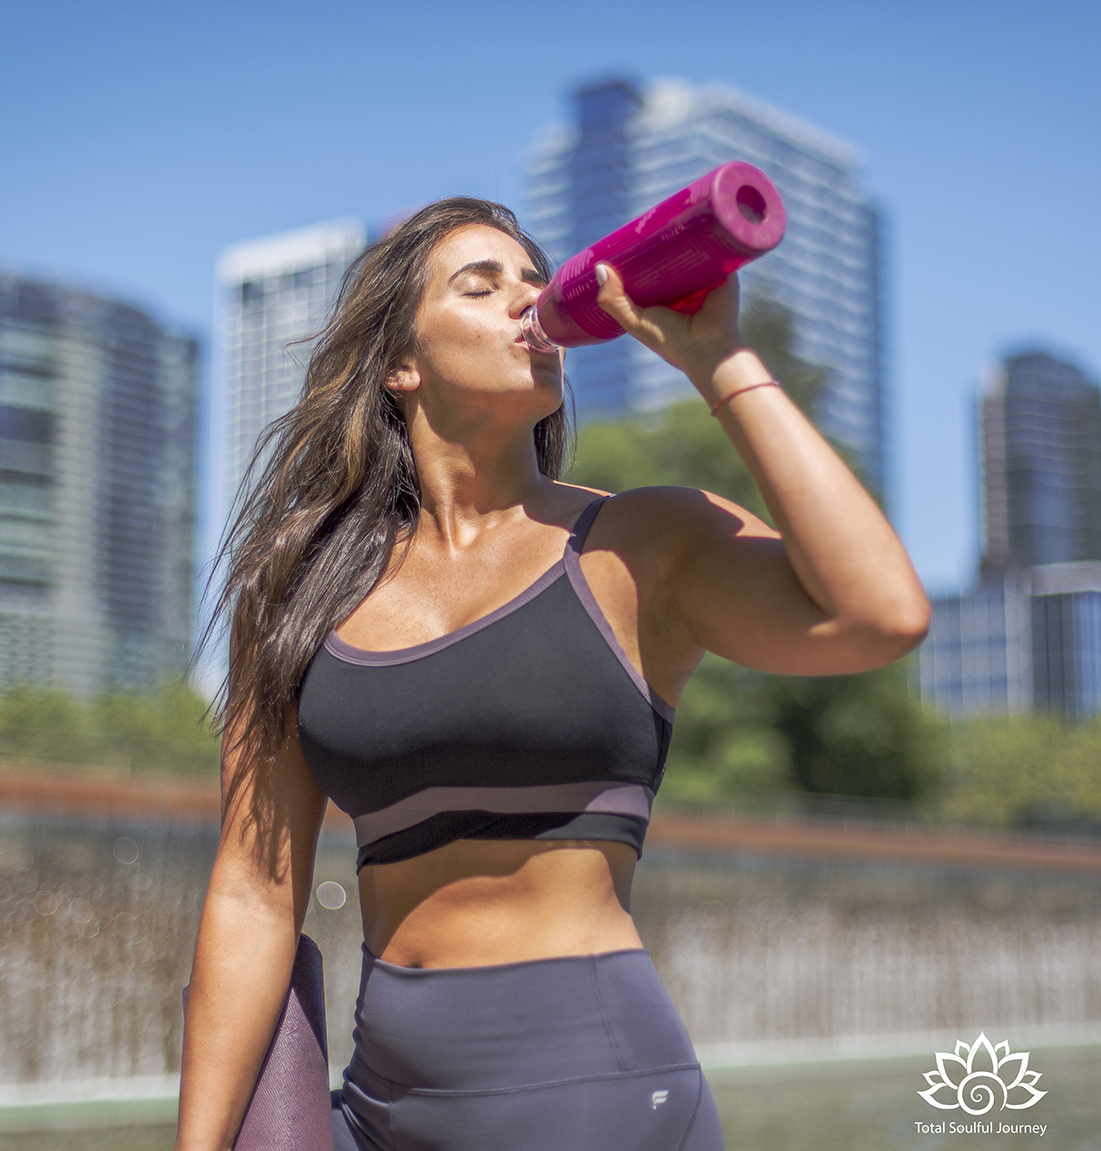 Sunshine, exercise and hydration boost our energy. Photography by Paul Garrett